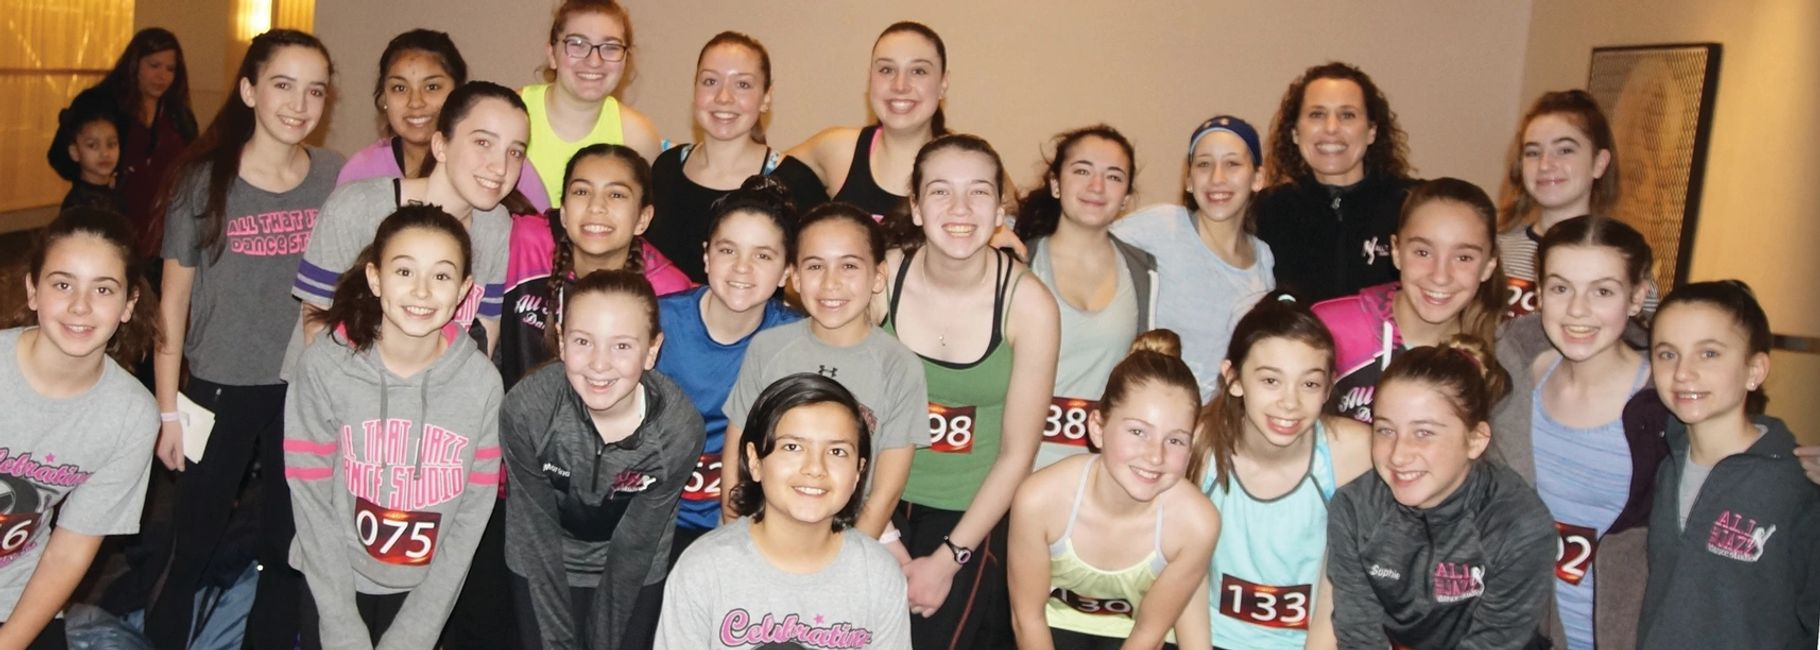 All That Jazz Dance Studio at a dance convention.  Children learning ballet, tap, jazz, and hip hop.